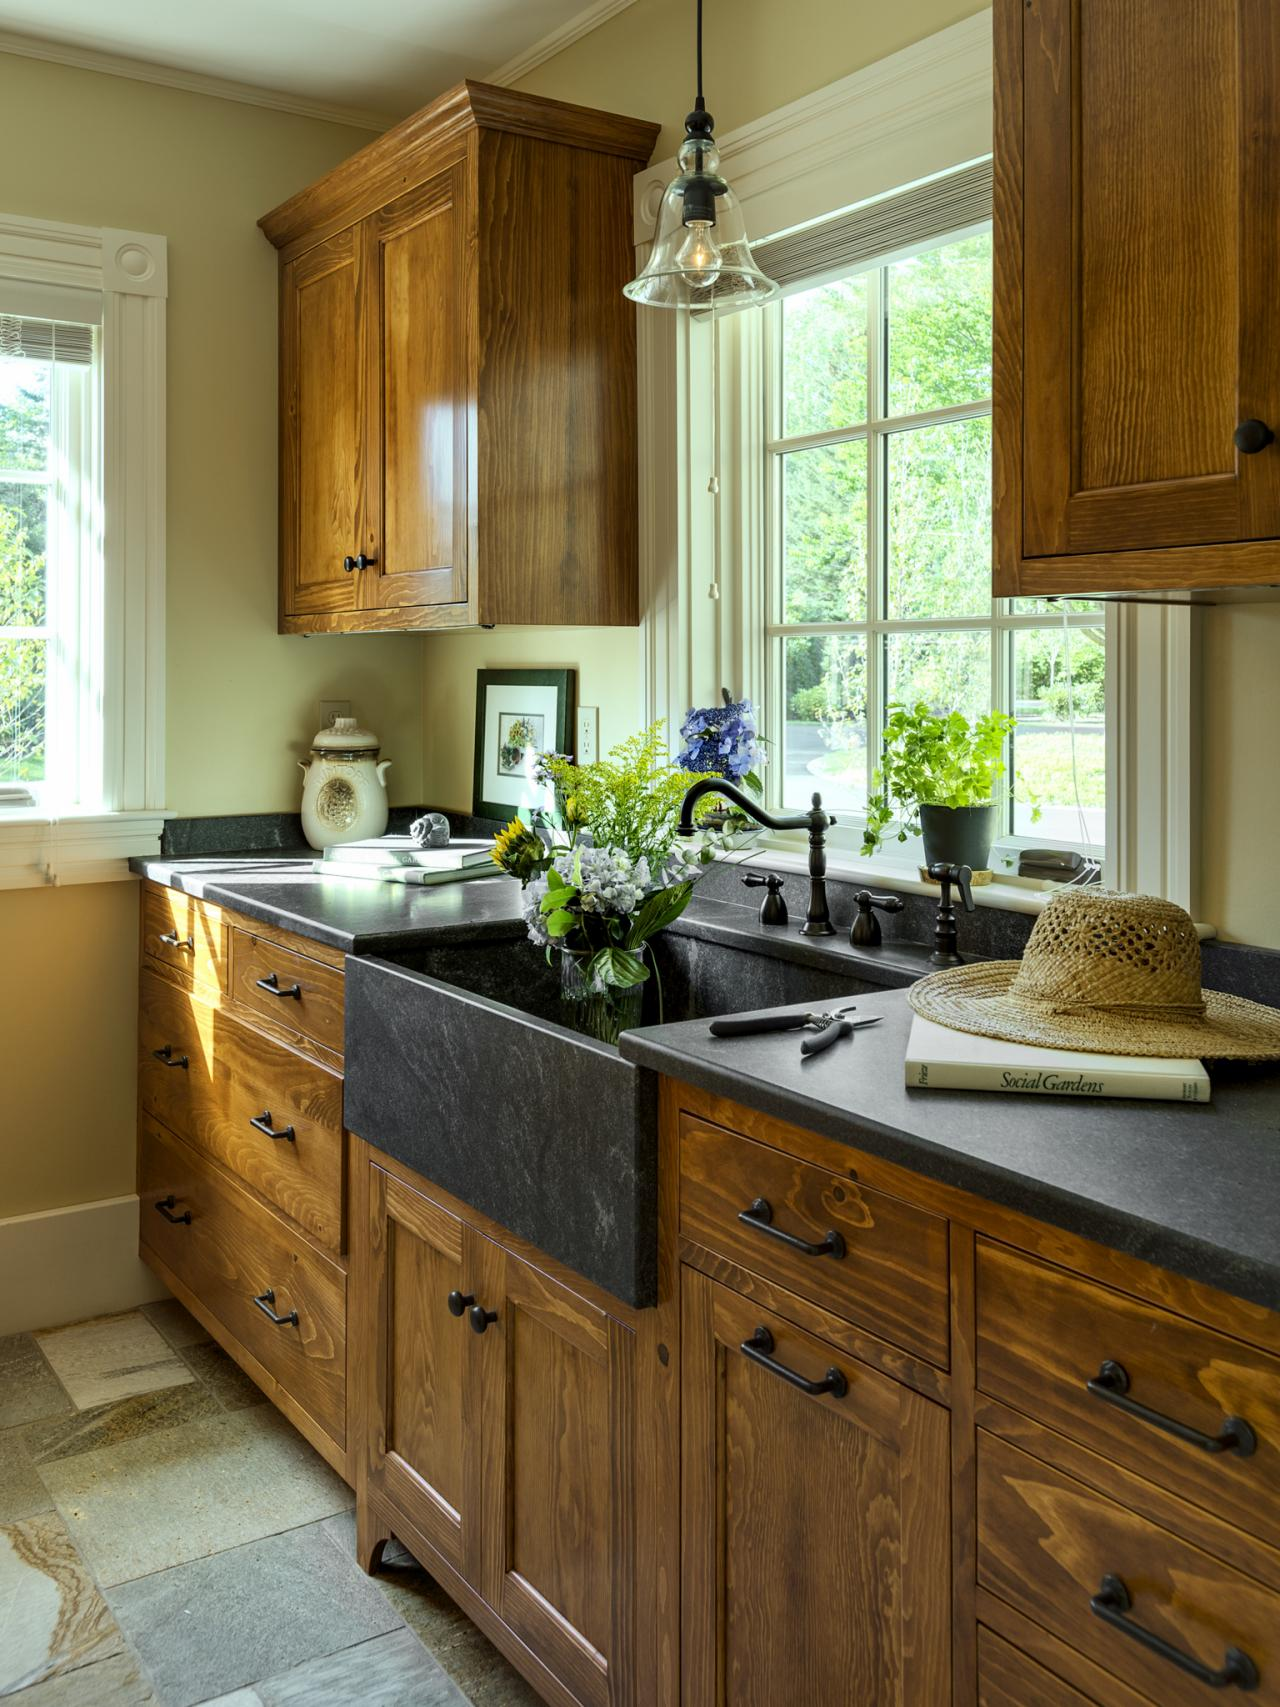 Maple Vanity Cabinets | Fieldstone Cabinetry Pricing | Norcraft Cabinets